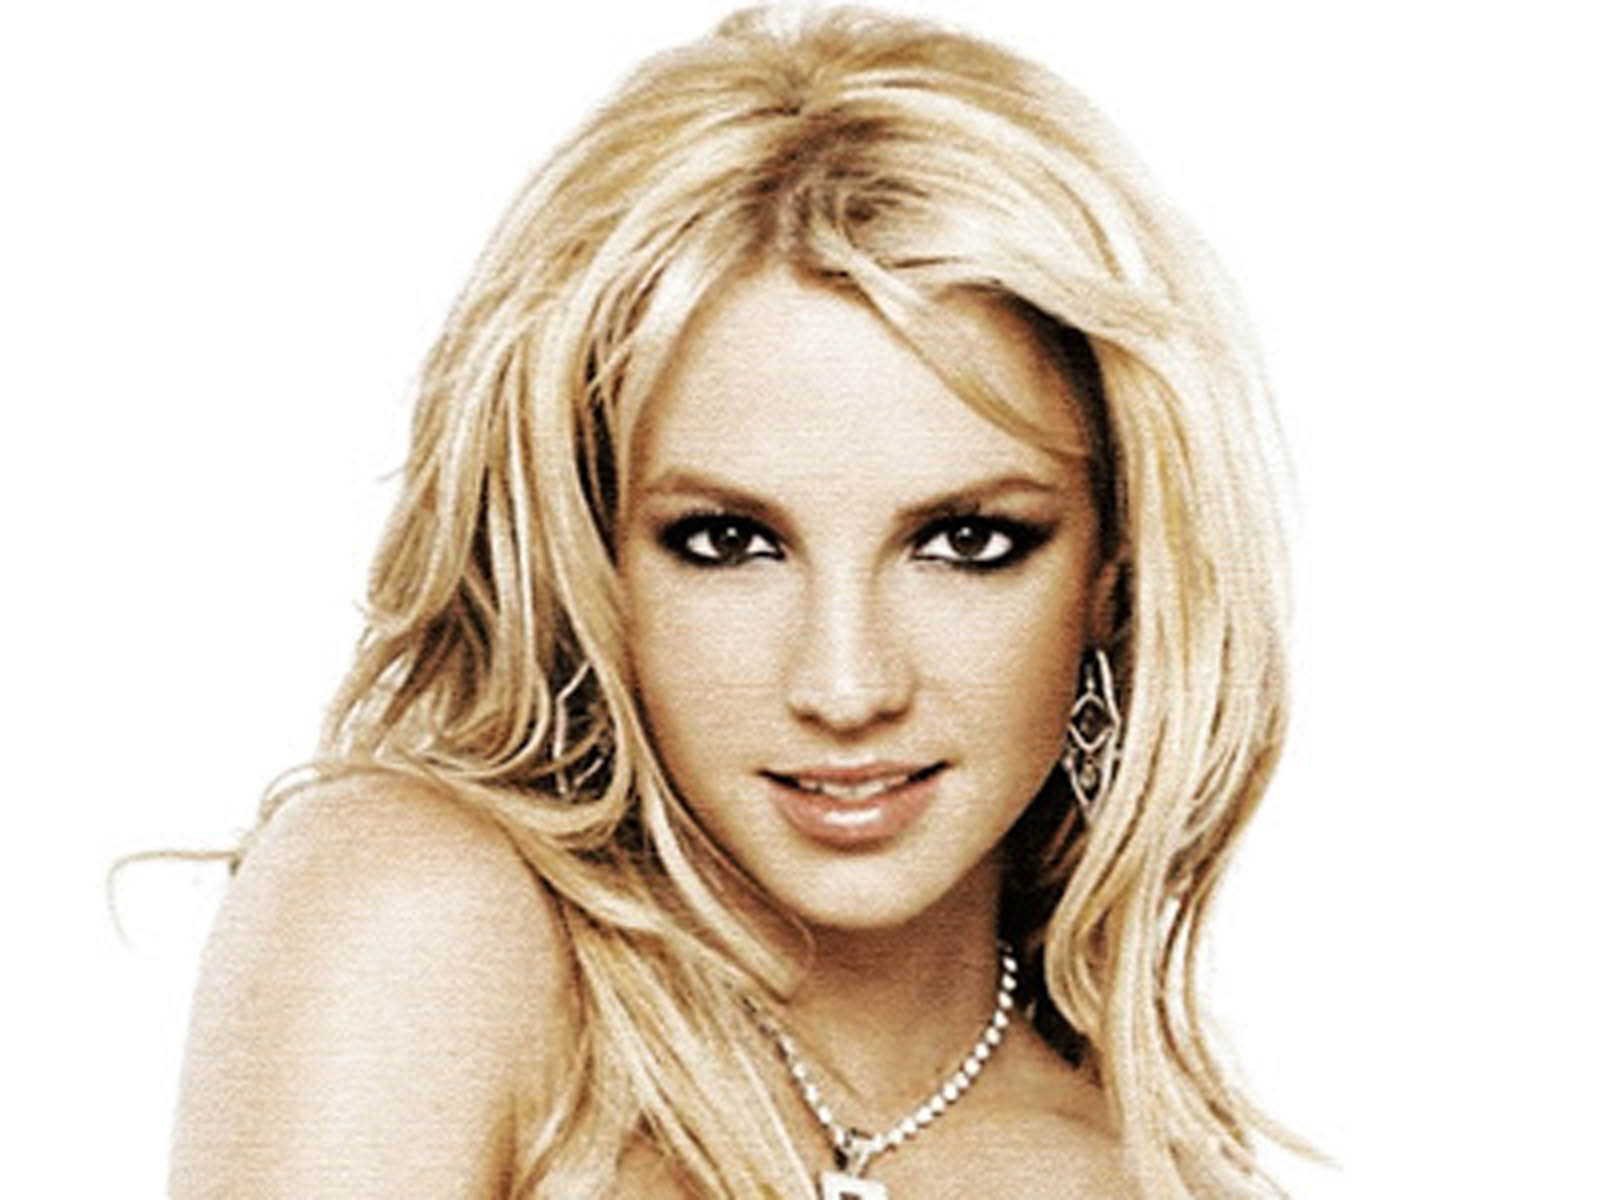 britny spears nude in shower with guy